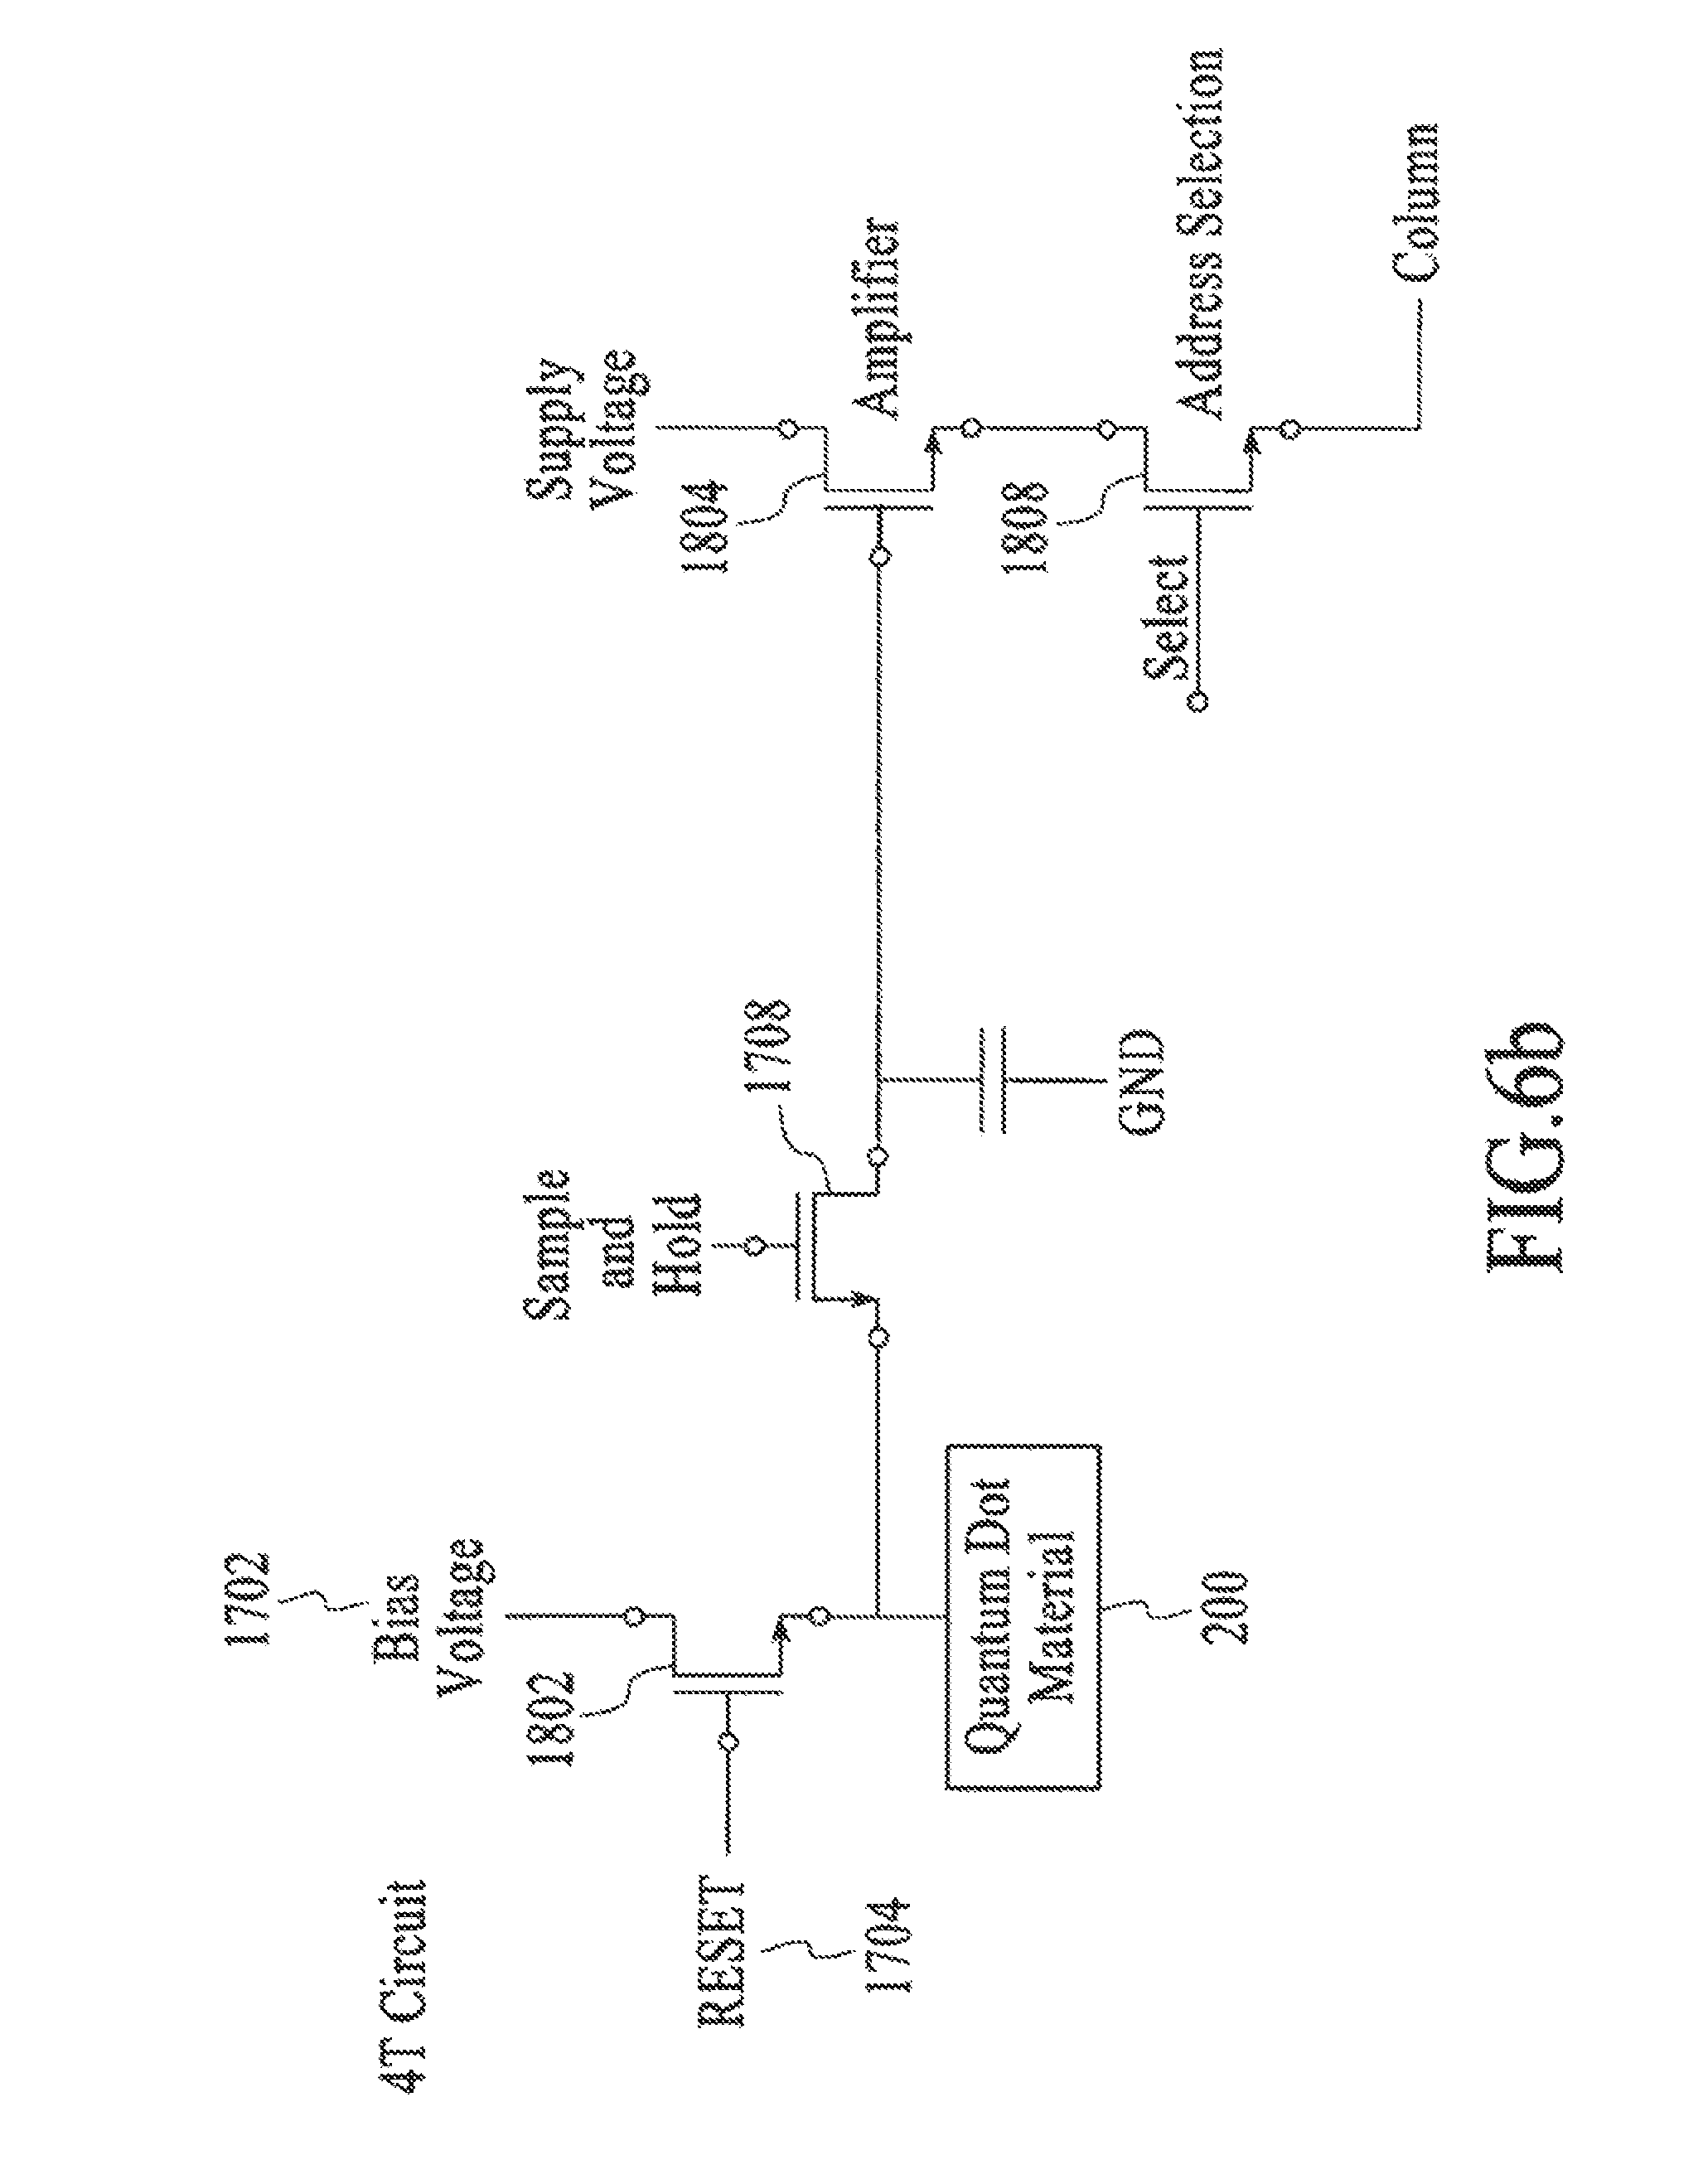 Patent Us 8530940 B2 About Gain Programmable Isolation Amplifier Circuit Othercircuit Images